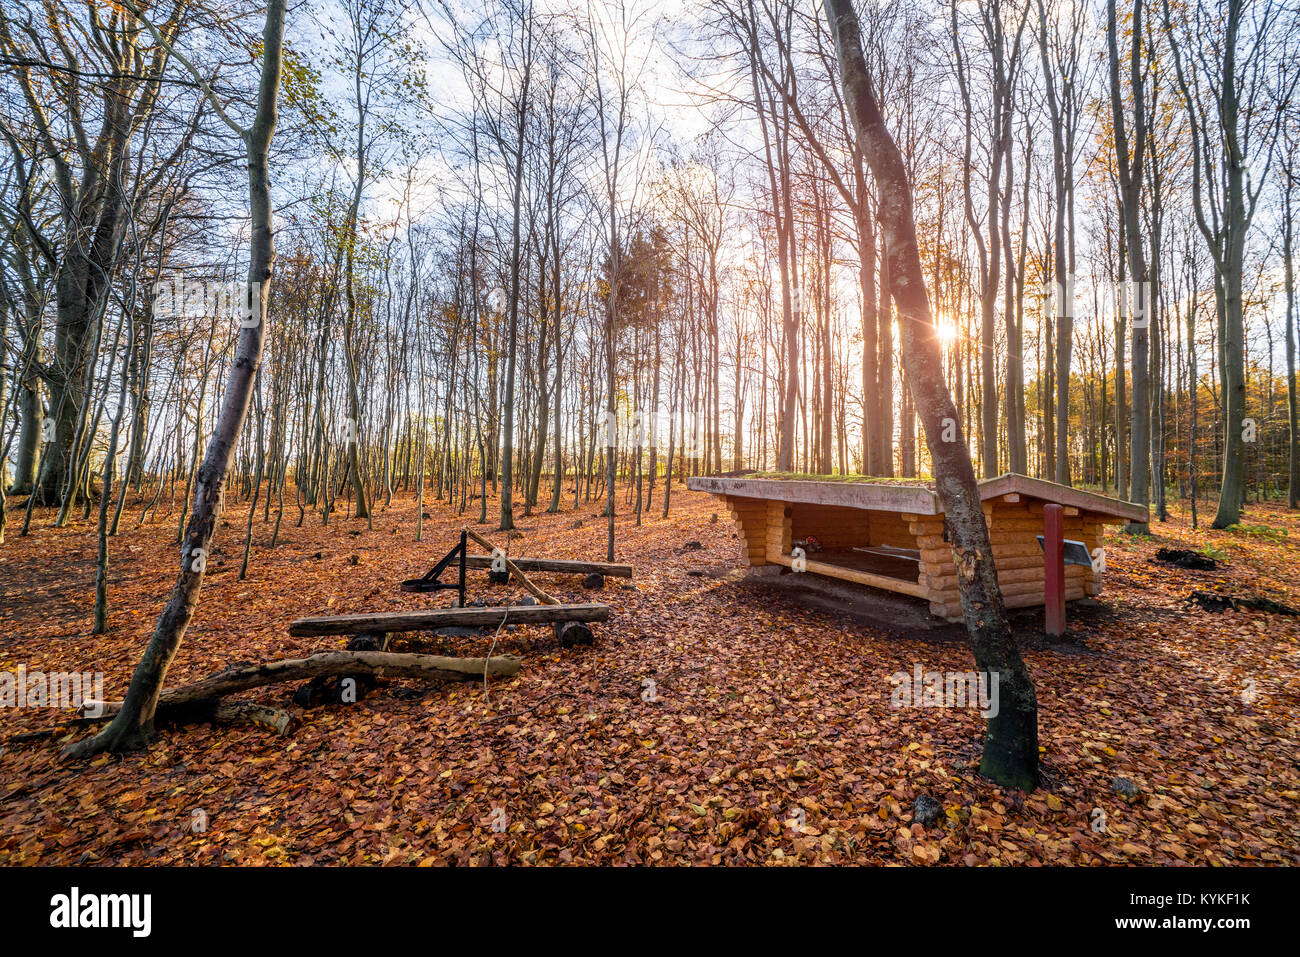 Shelter in a forest sunrise in the fall with tall trees and autumn leaves on the ground - Stock Image